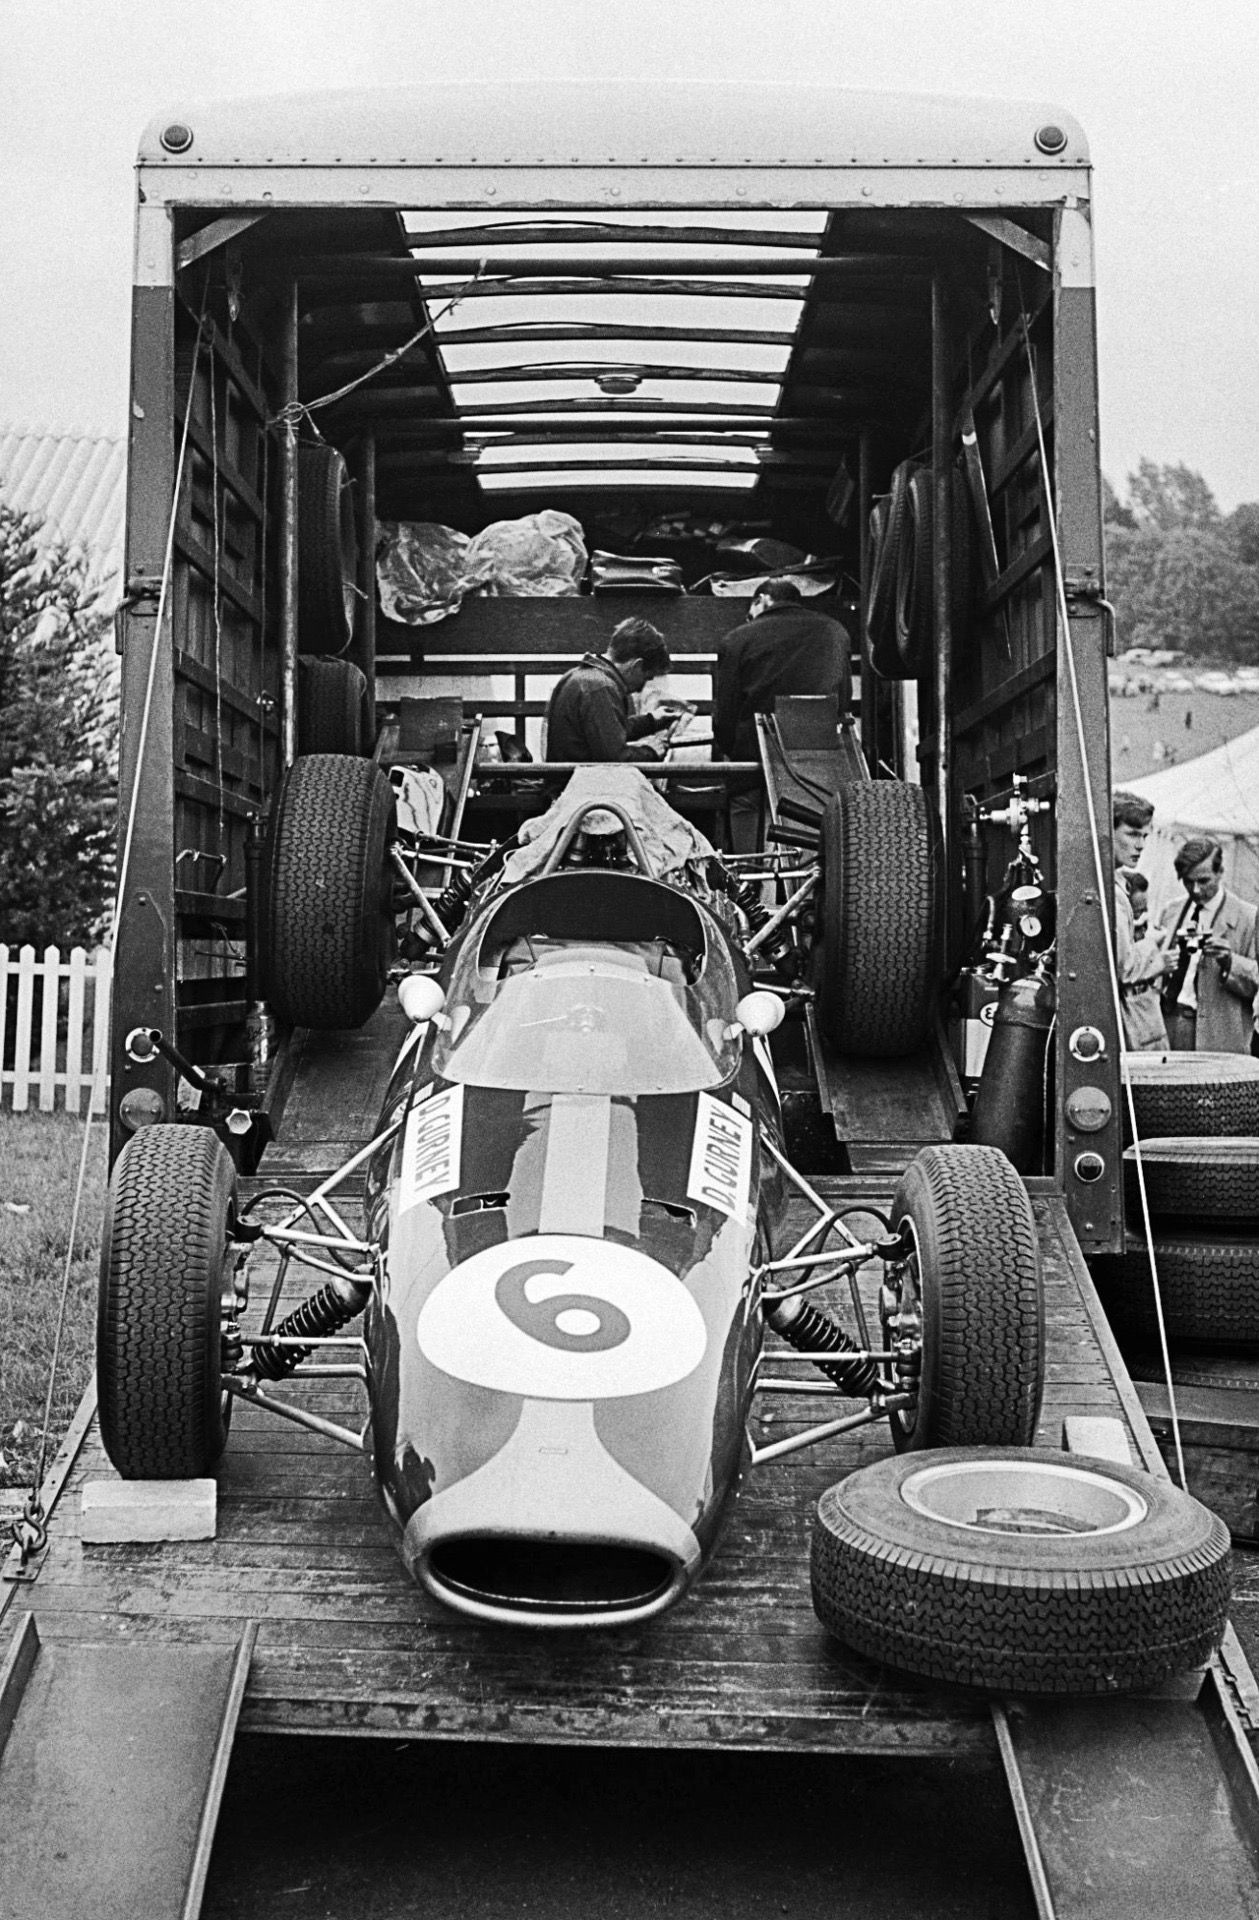 Pin by Mark Koppen on Vintage F1 in 2020 (With images